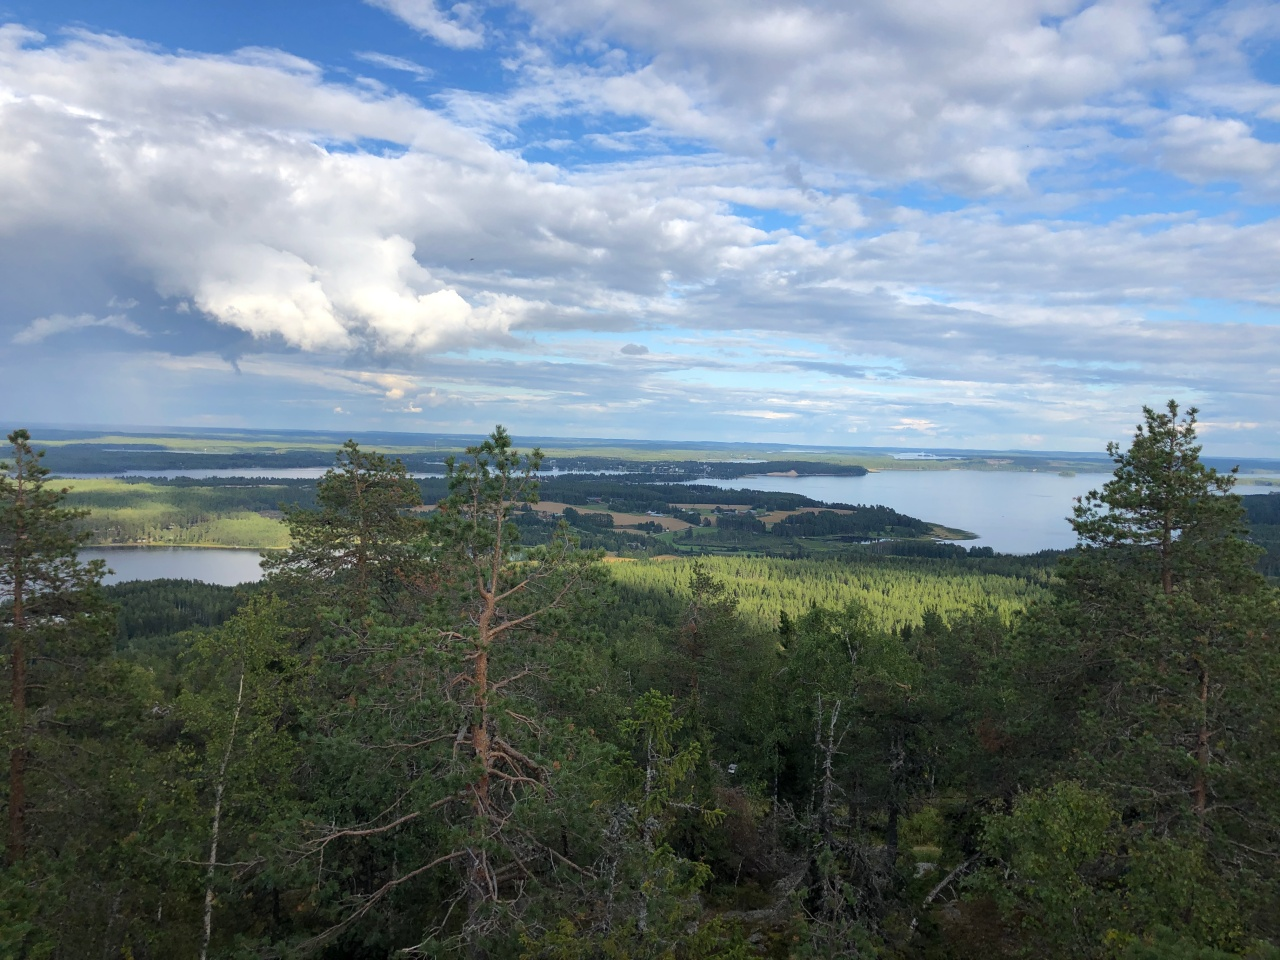 Scenery of Finland